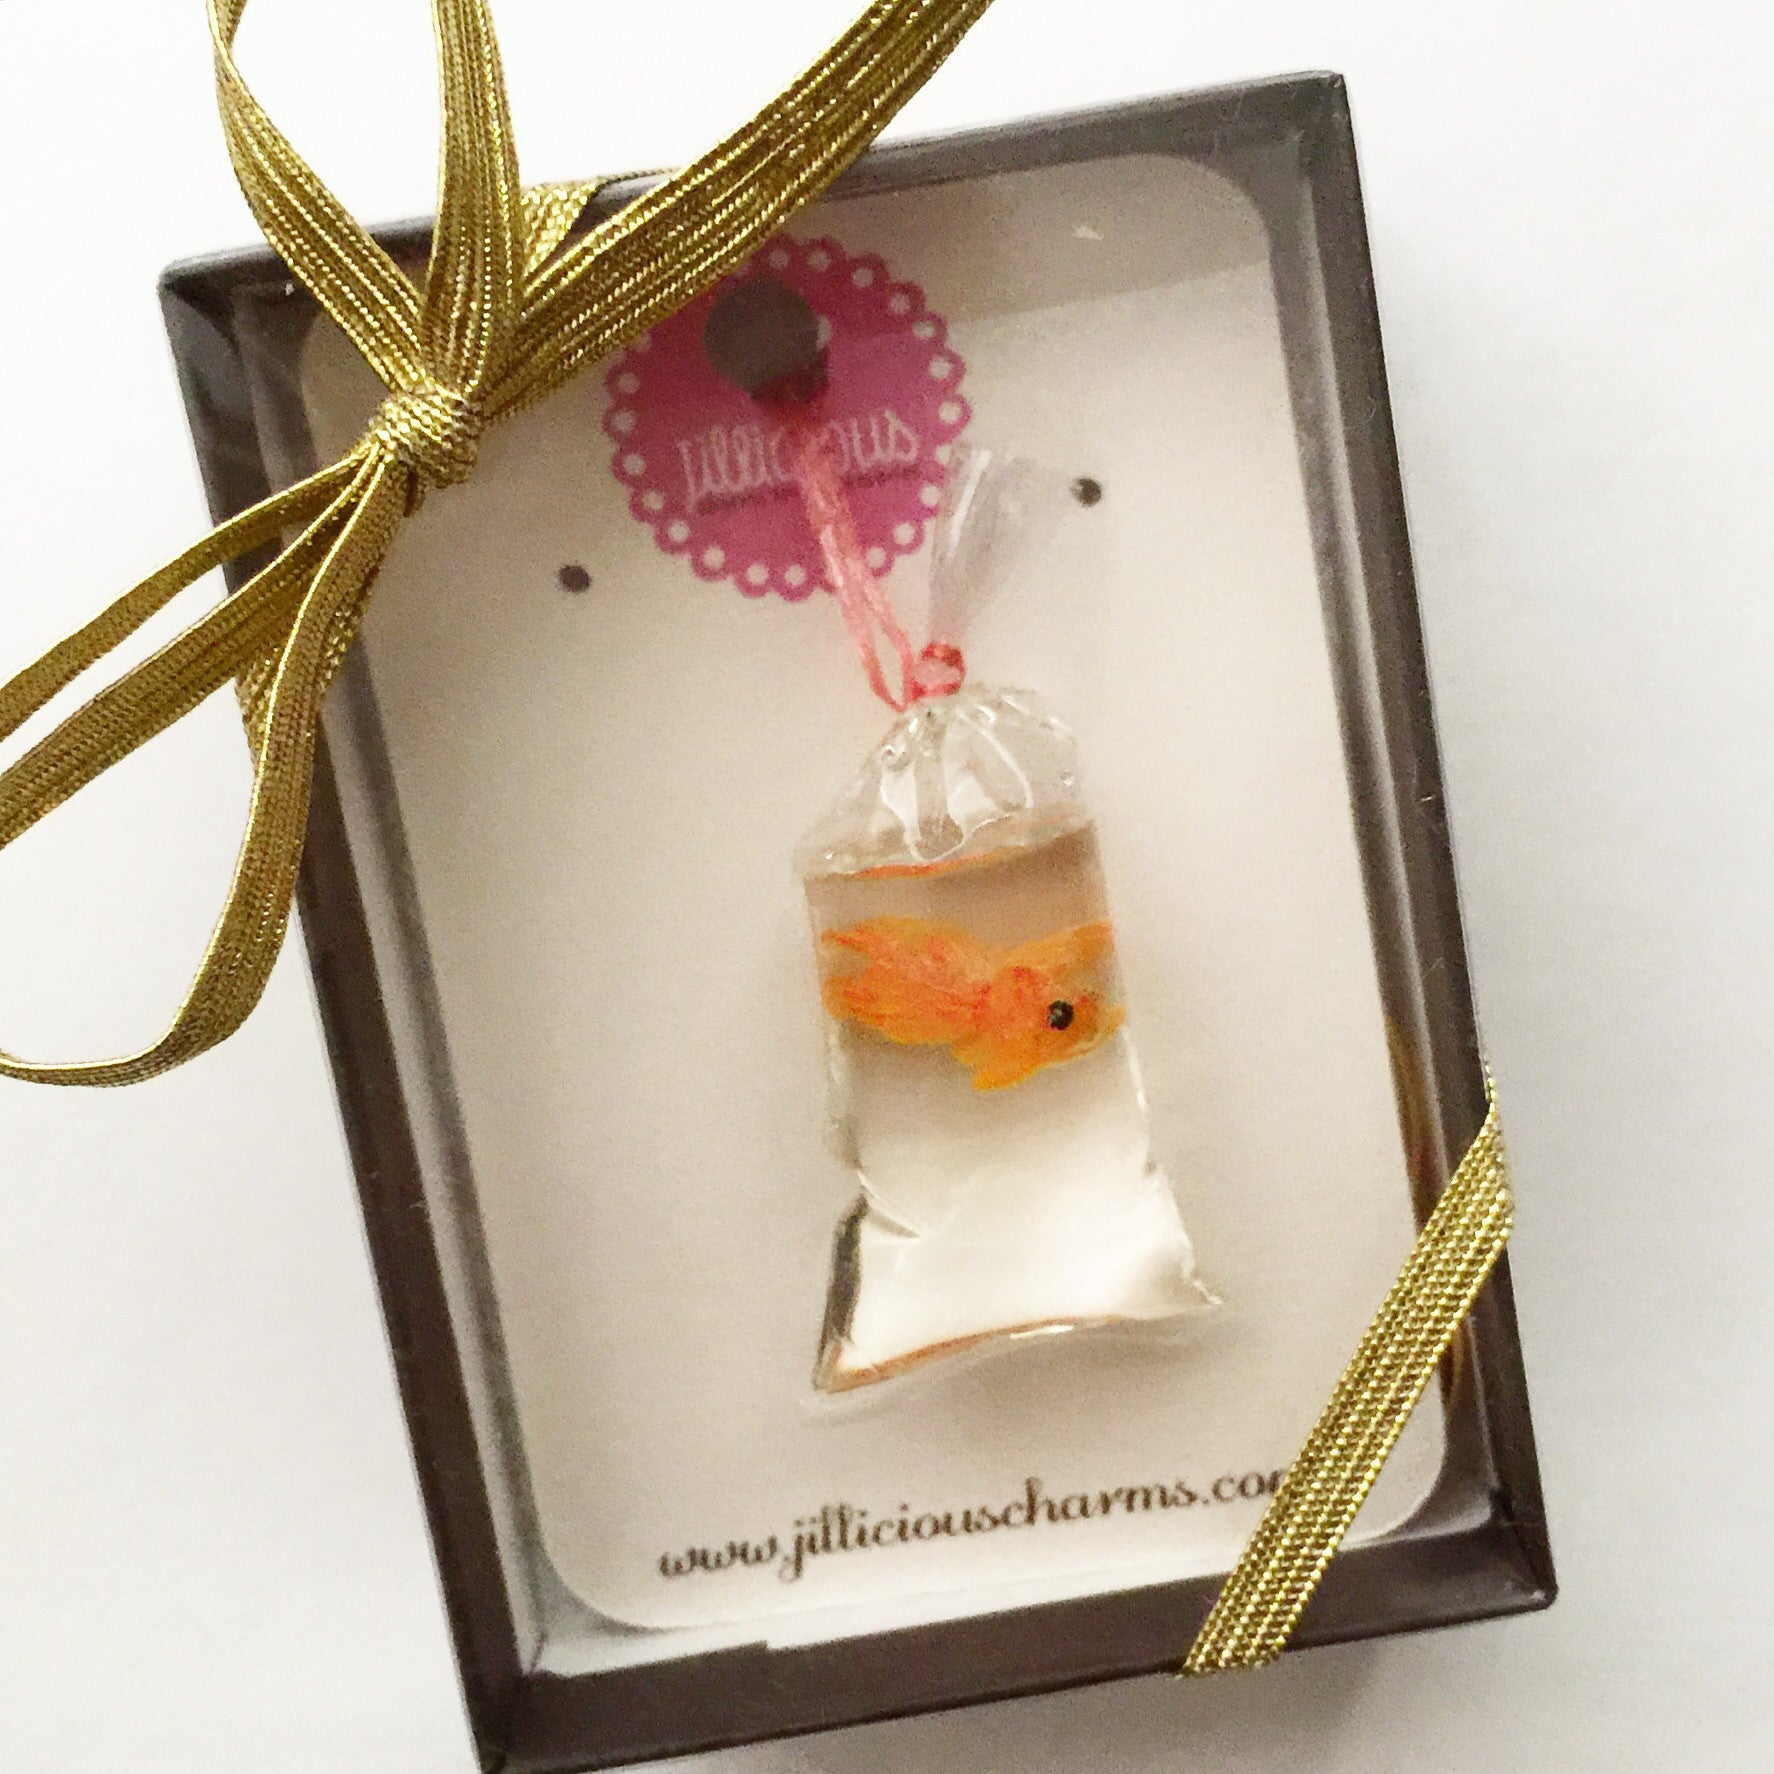 goldfish in a bag keychain/ bag charm - Jillicious charms and accessories - 4